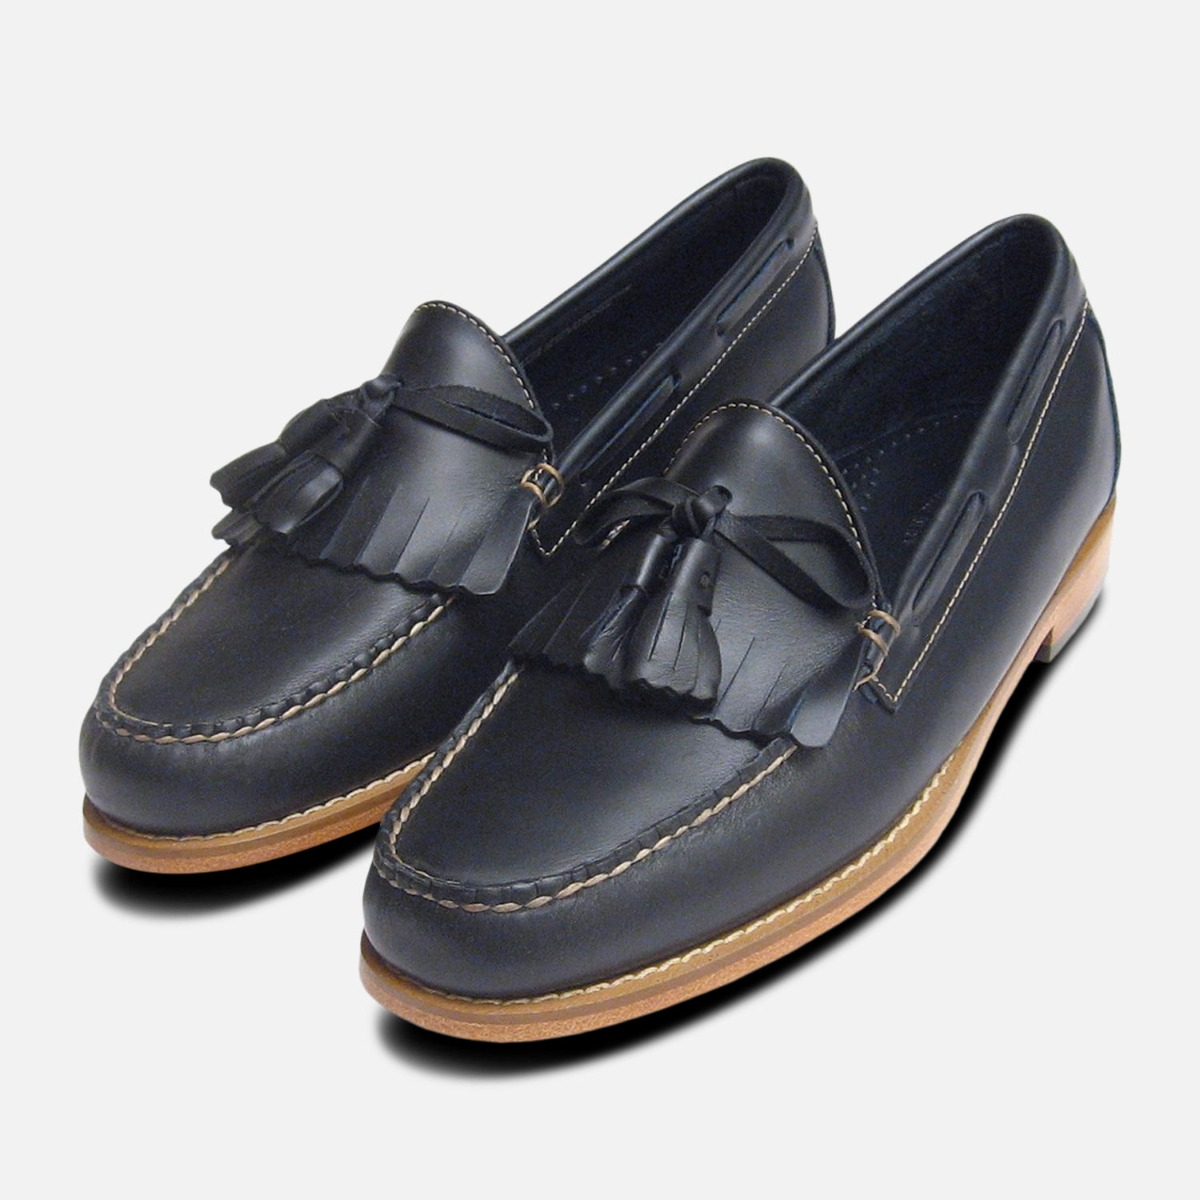 029958438f7 Details about Navy Blue Waxy Leather Mens Fringe   Tassel Loafers by Bass  Weejuns